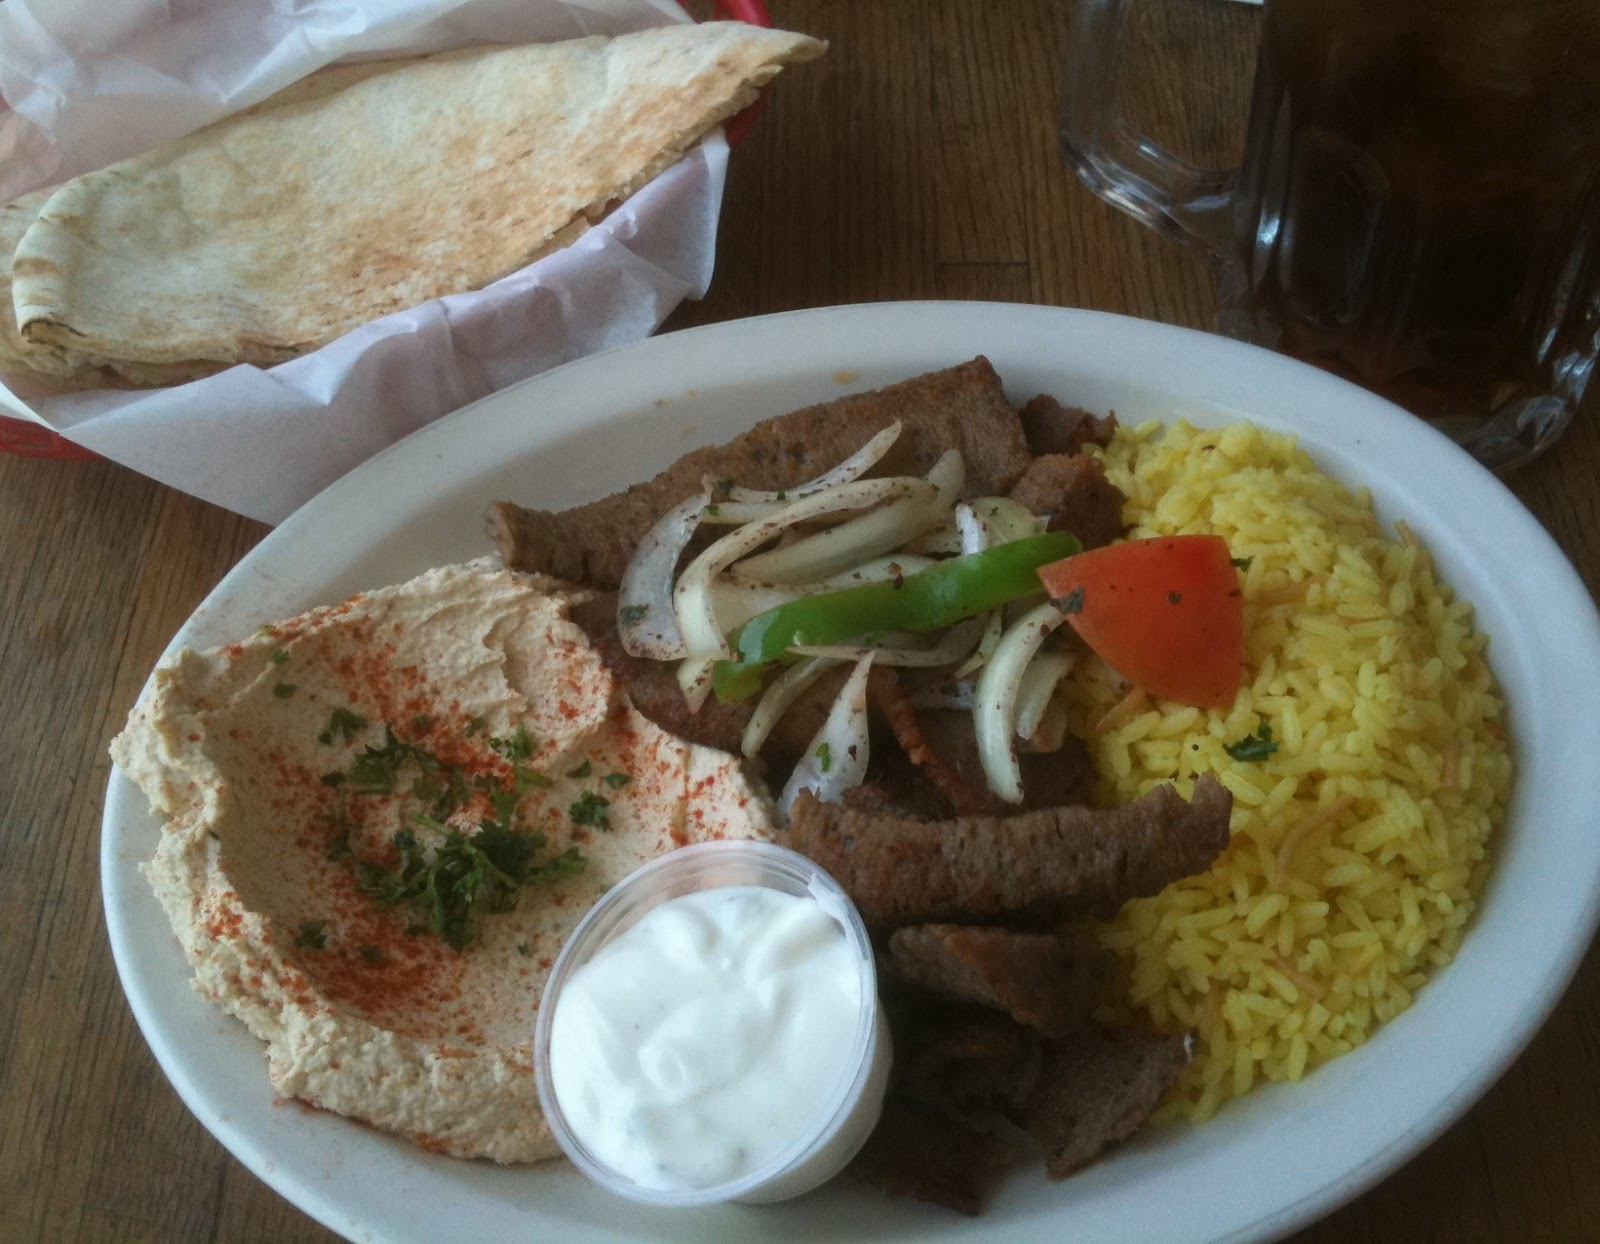 Monrovia Now News And Comment About Monrovia California Lunch At Mediterranean Kabob Room